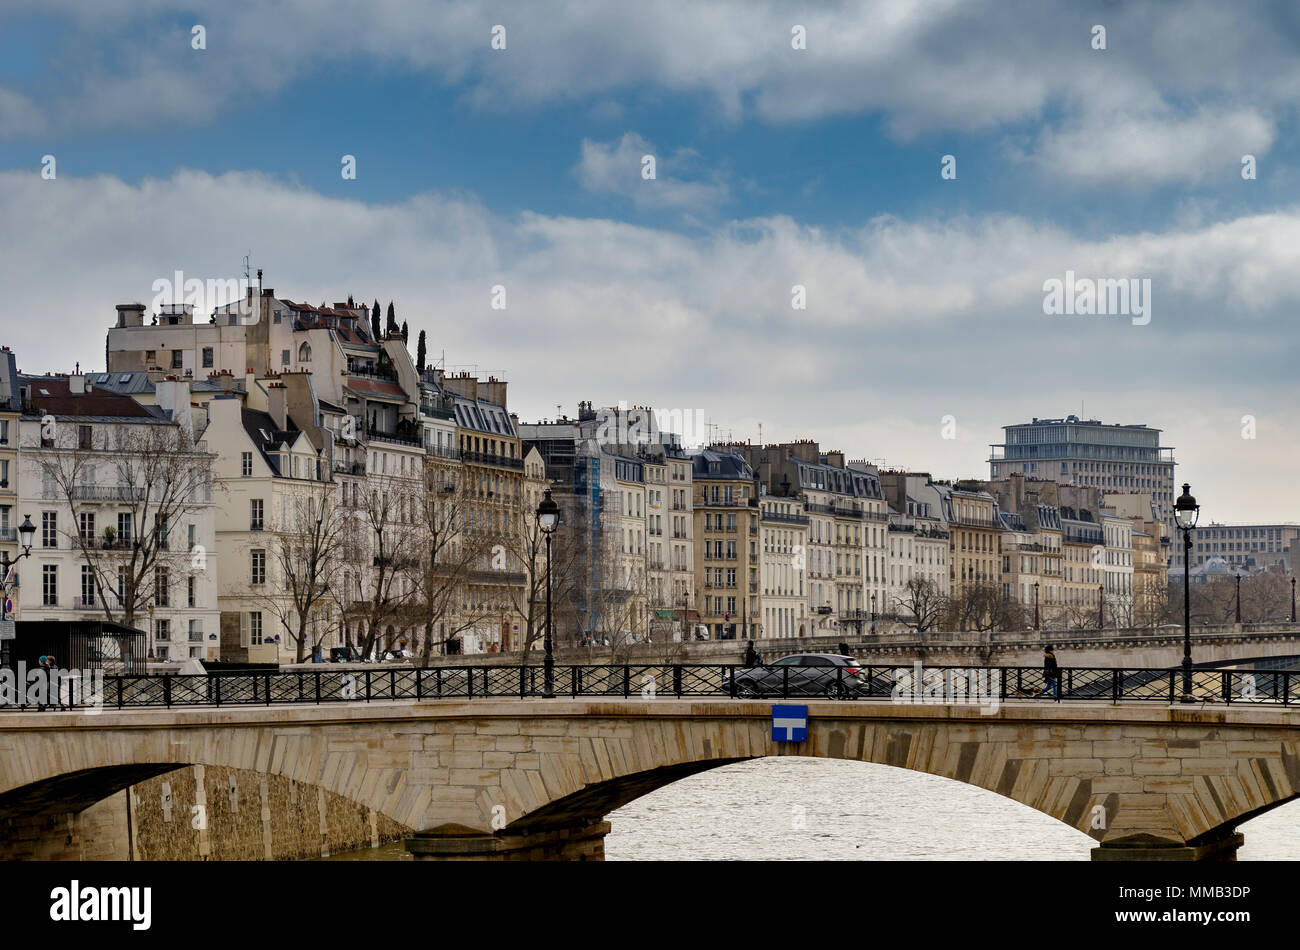 Pont de l'Archevêché looking towards the buildings and apartments on  Île Saint-Louis,Paris ,France - Stock Image